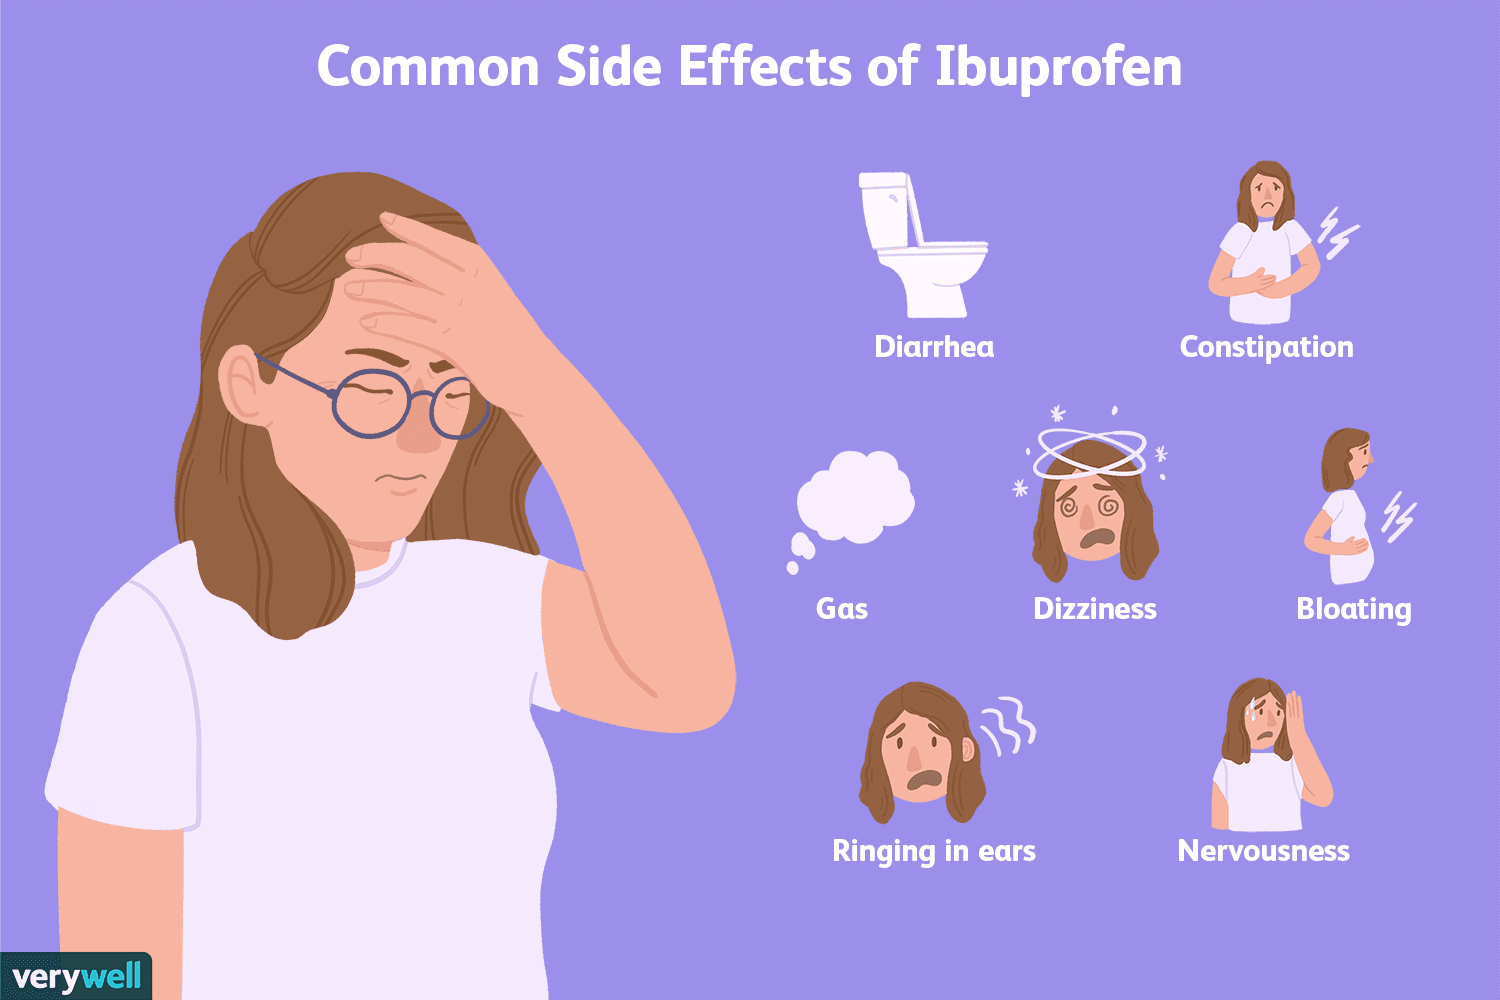 Common Side Effects of Ibuprofen